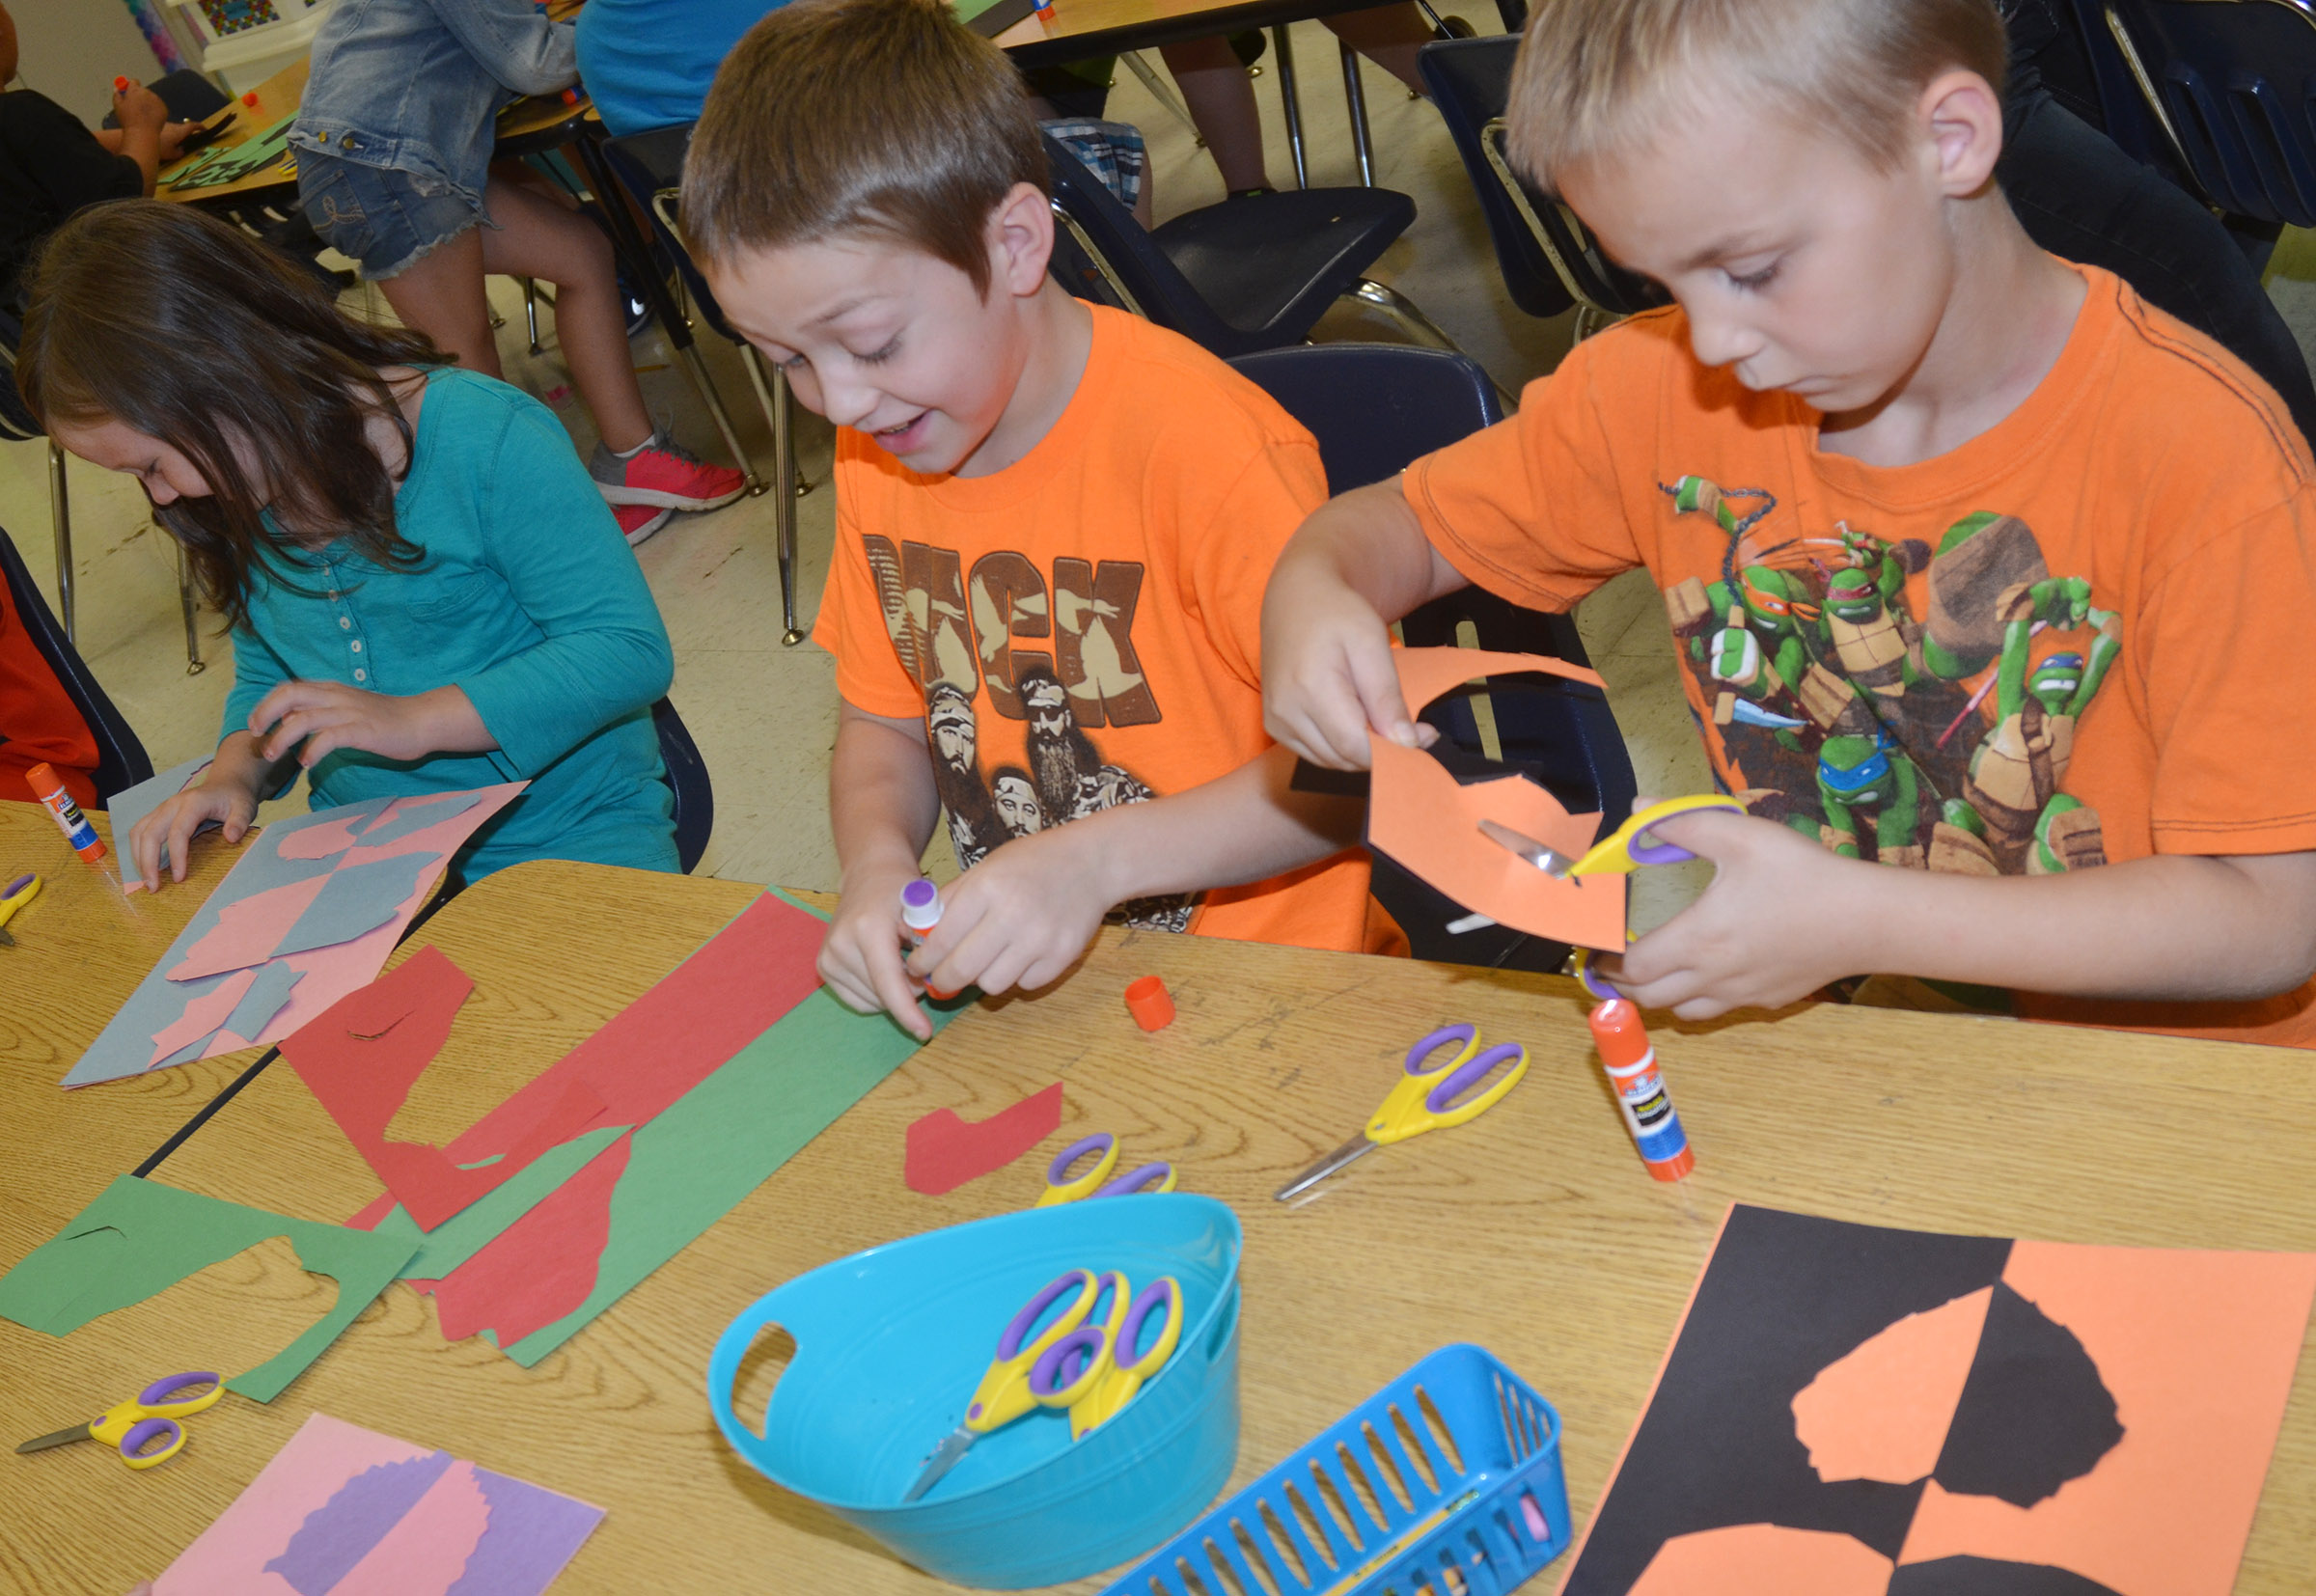 CES second-graders Jacob Golden, at left, and Hunter Bates cut out their free form shapes.